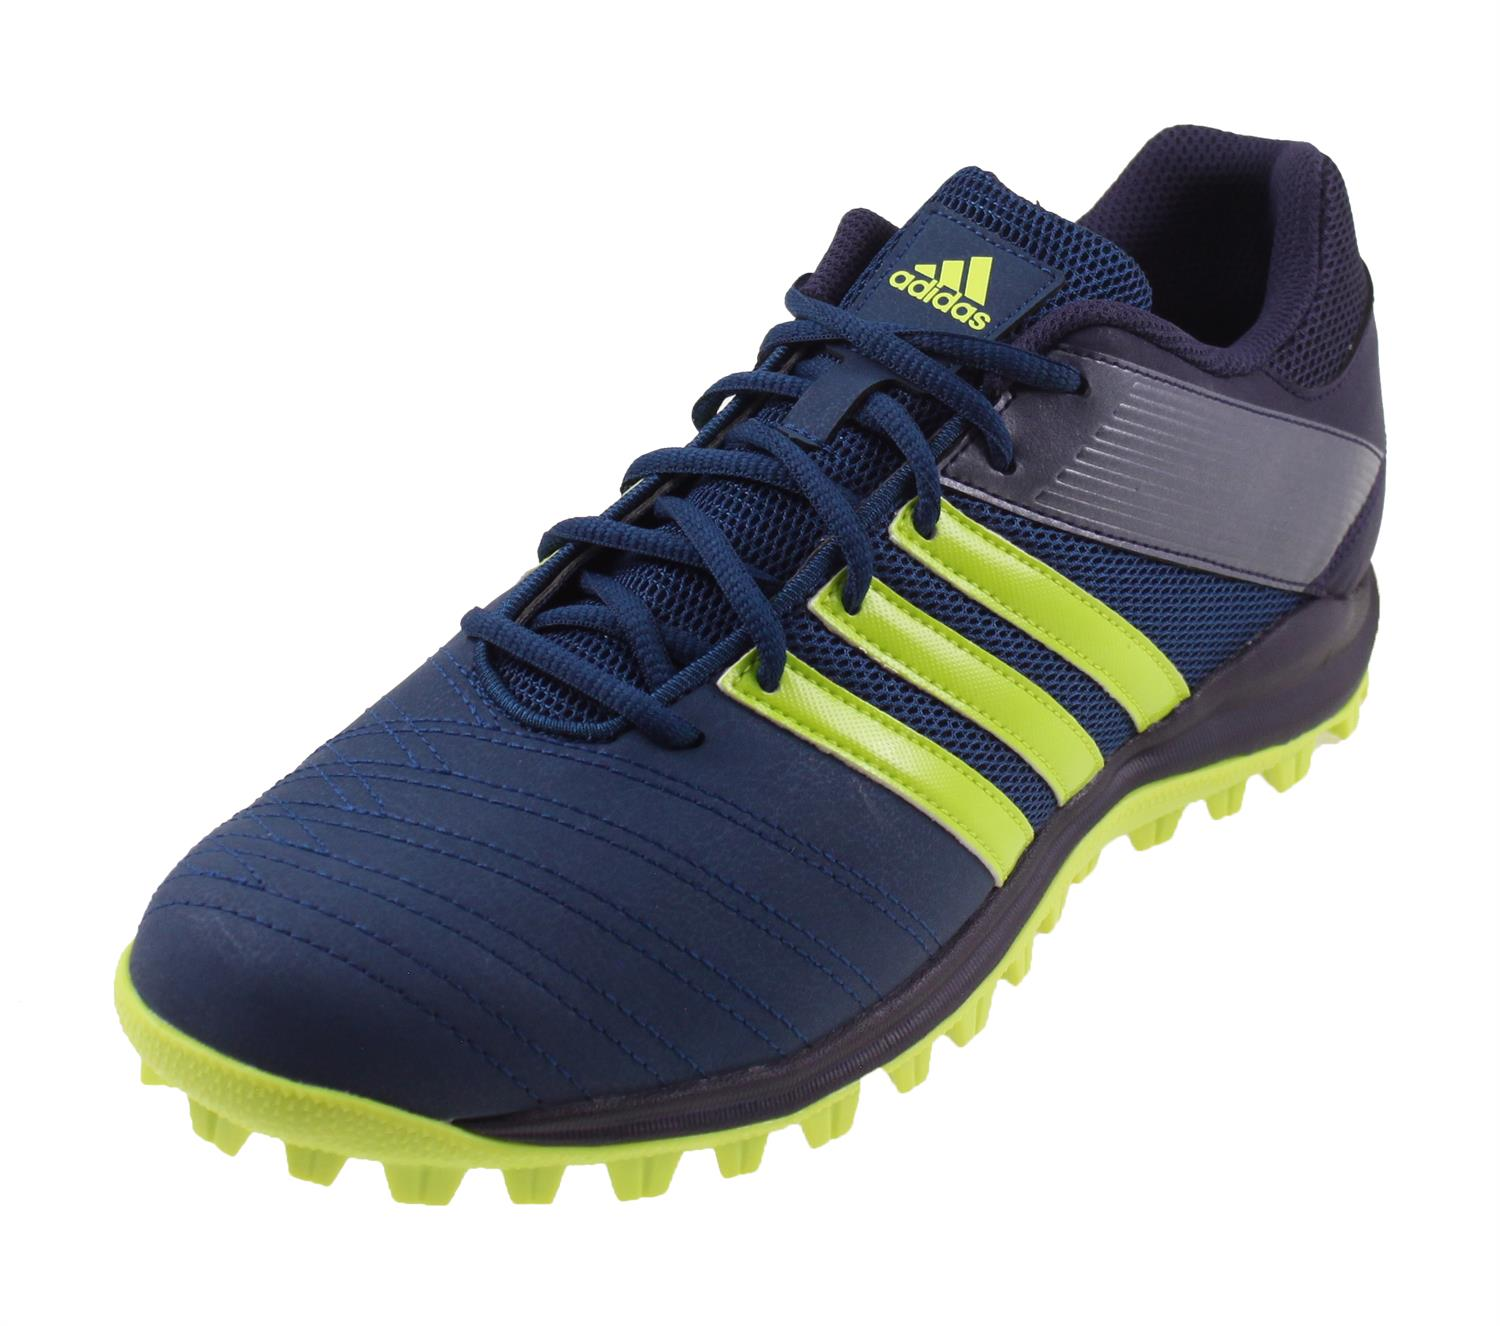 Adidas Chaussures De Hockey Srs.4 M 6MwzSllpW